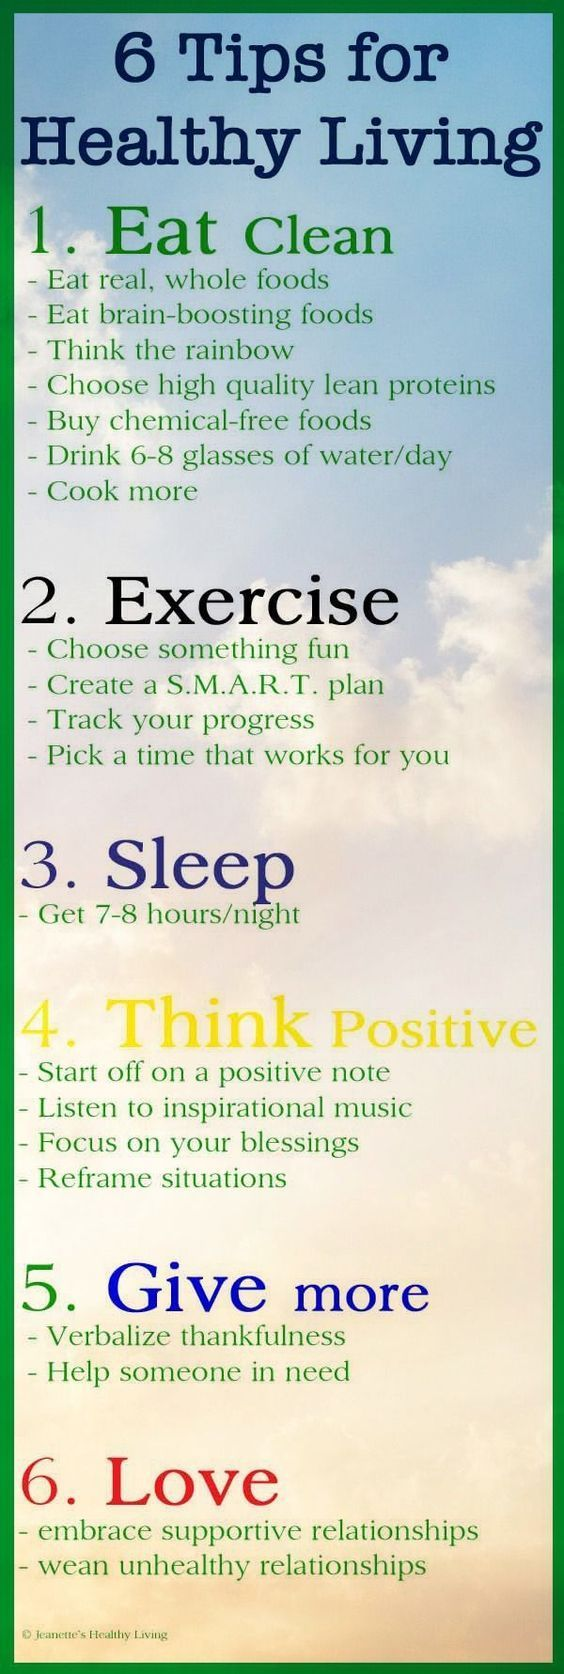 6 Easy Tips for Improving Physical and Mental Health - Jeanette's Healthy Living